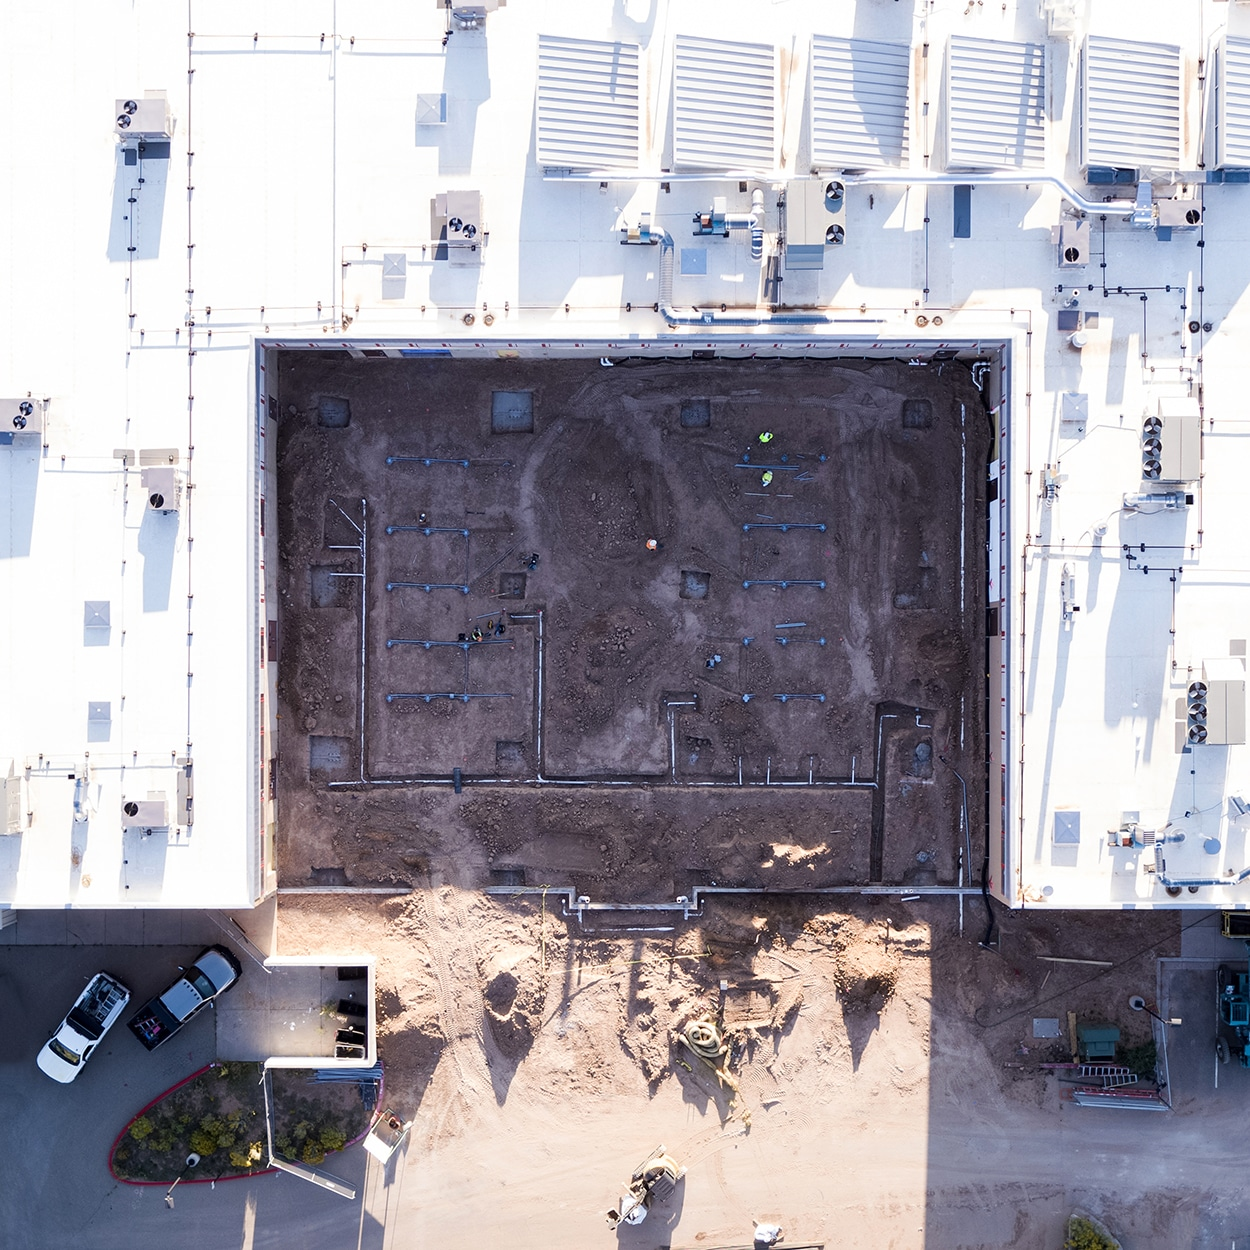 Construction on Campus—IAIA Expands Its Mission